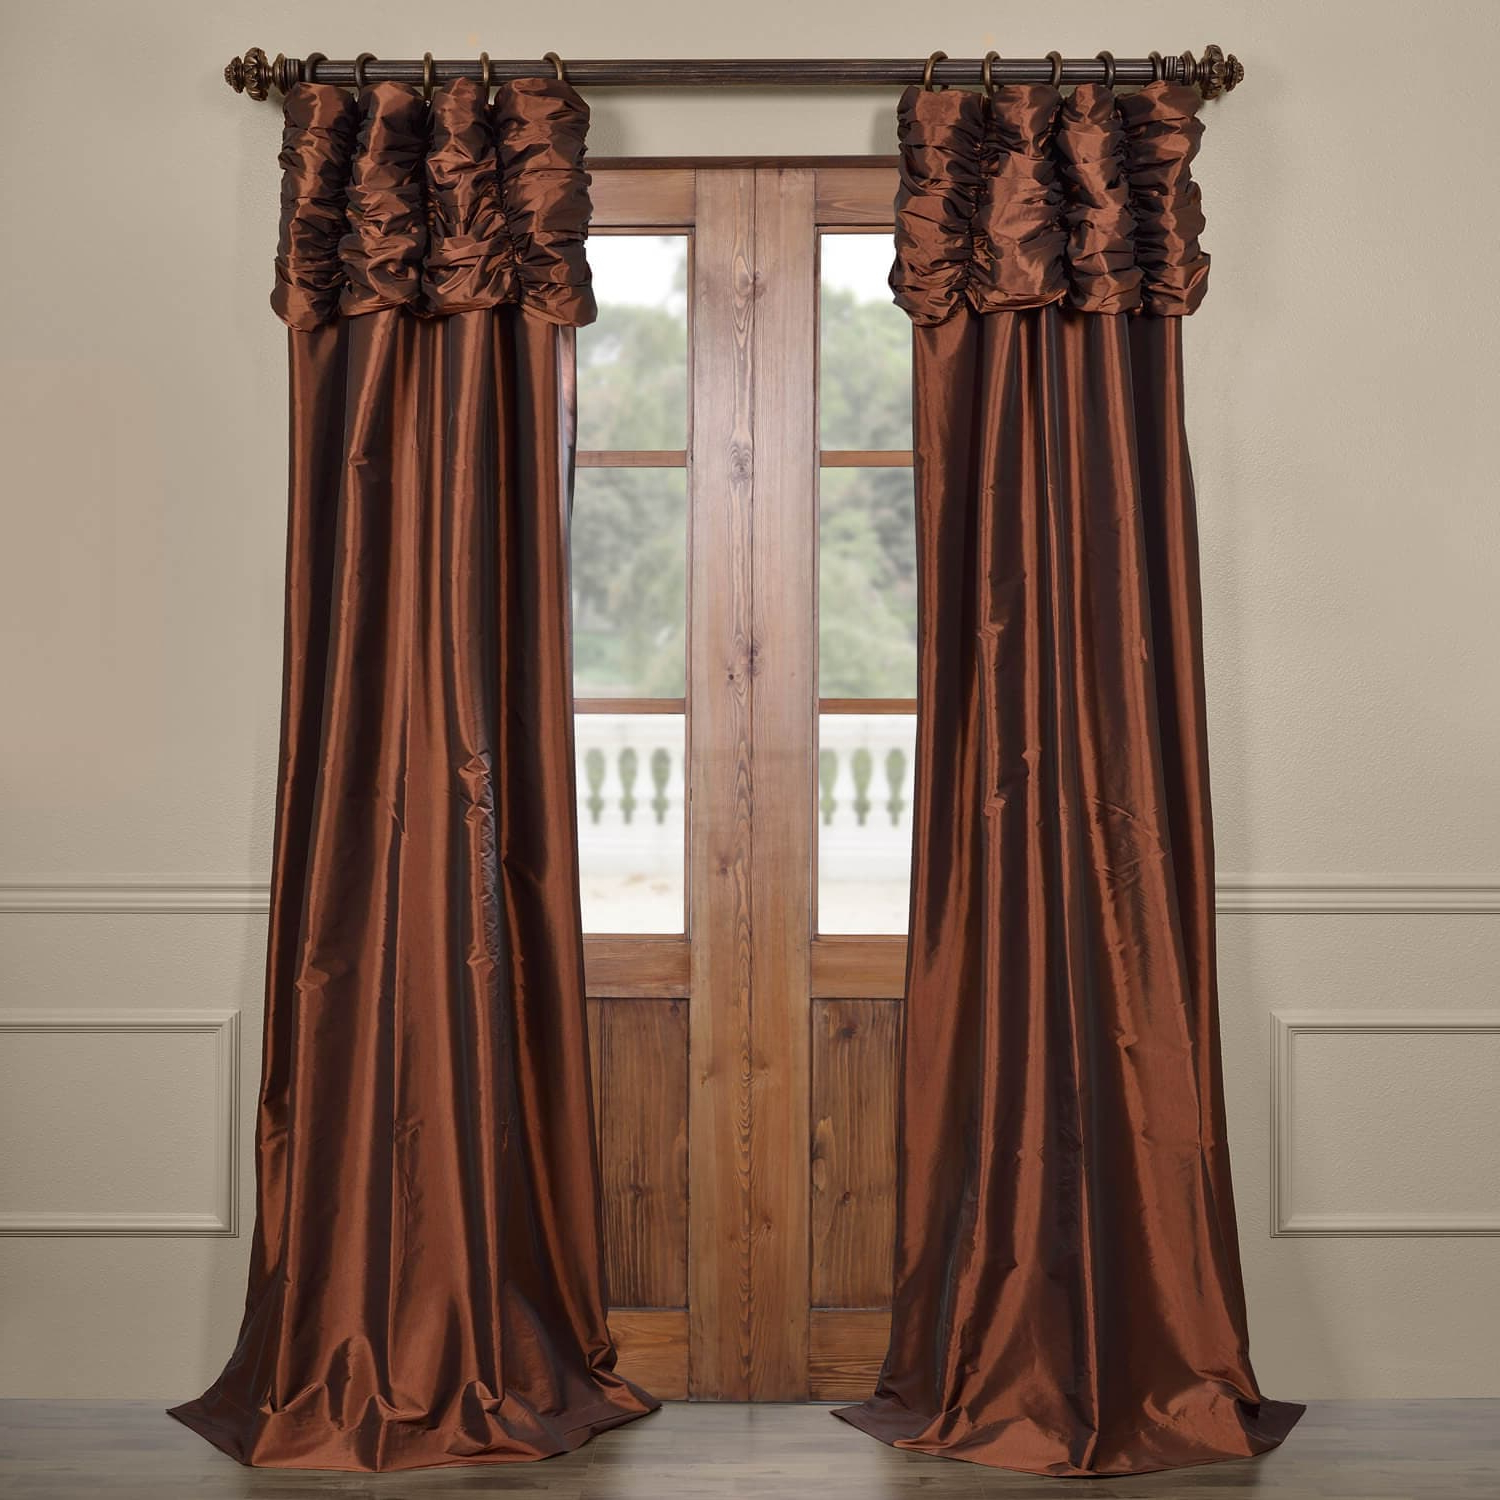 Copper Curtains Panels (View 20 of 20)